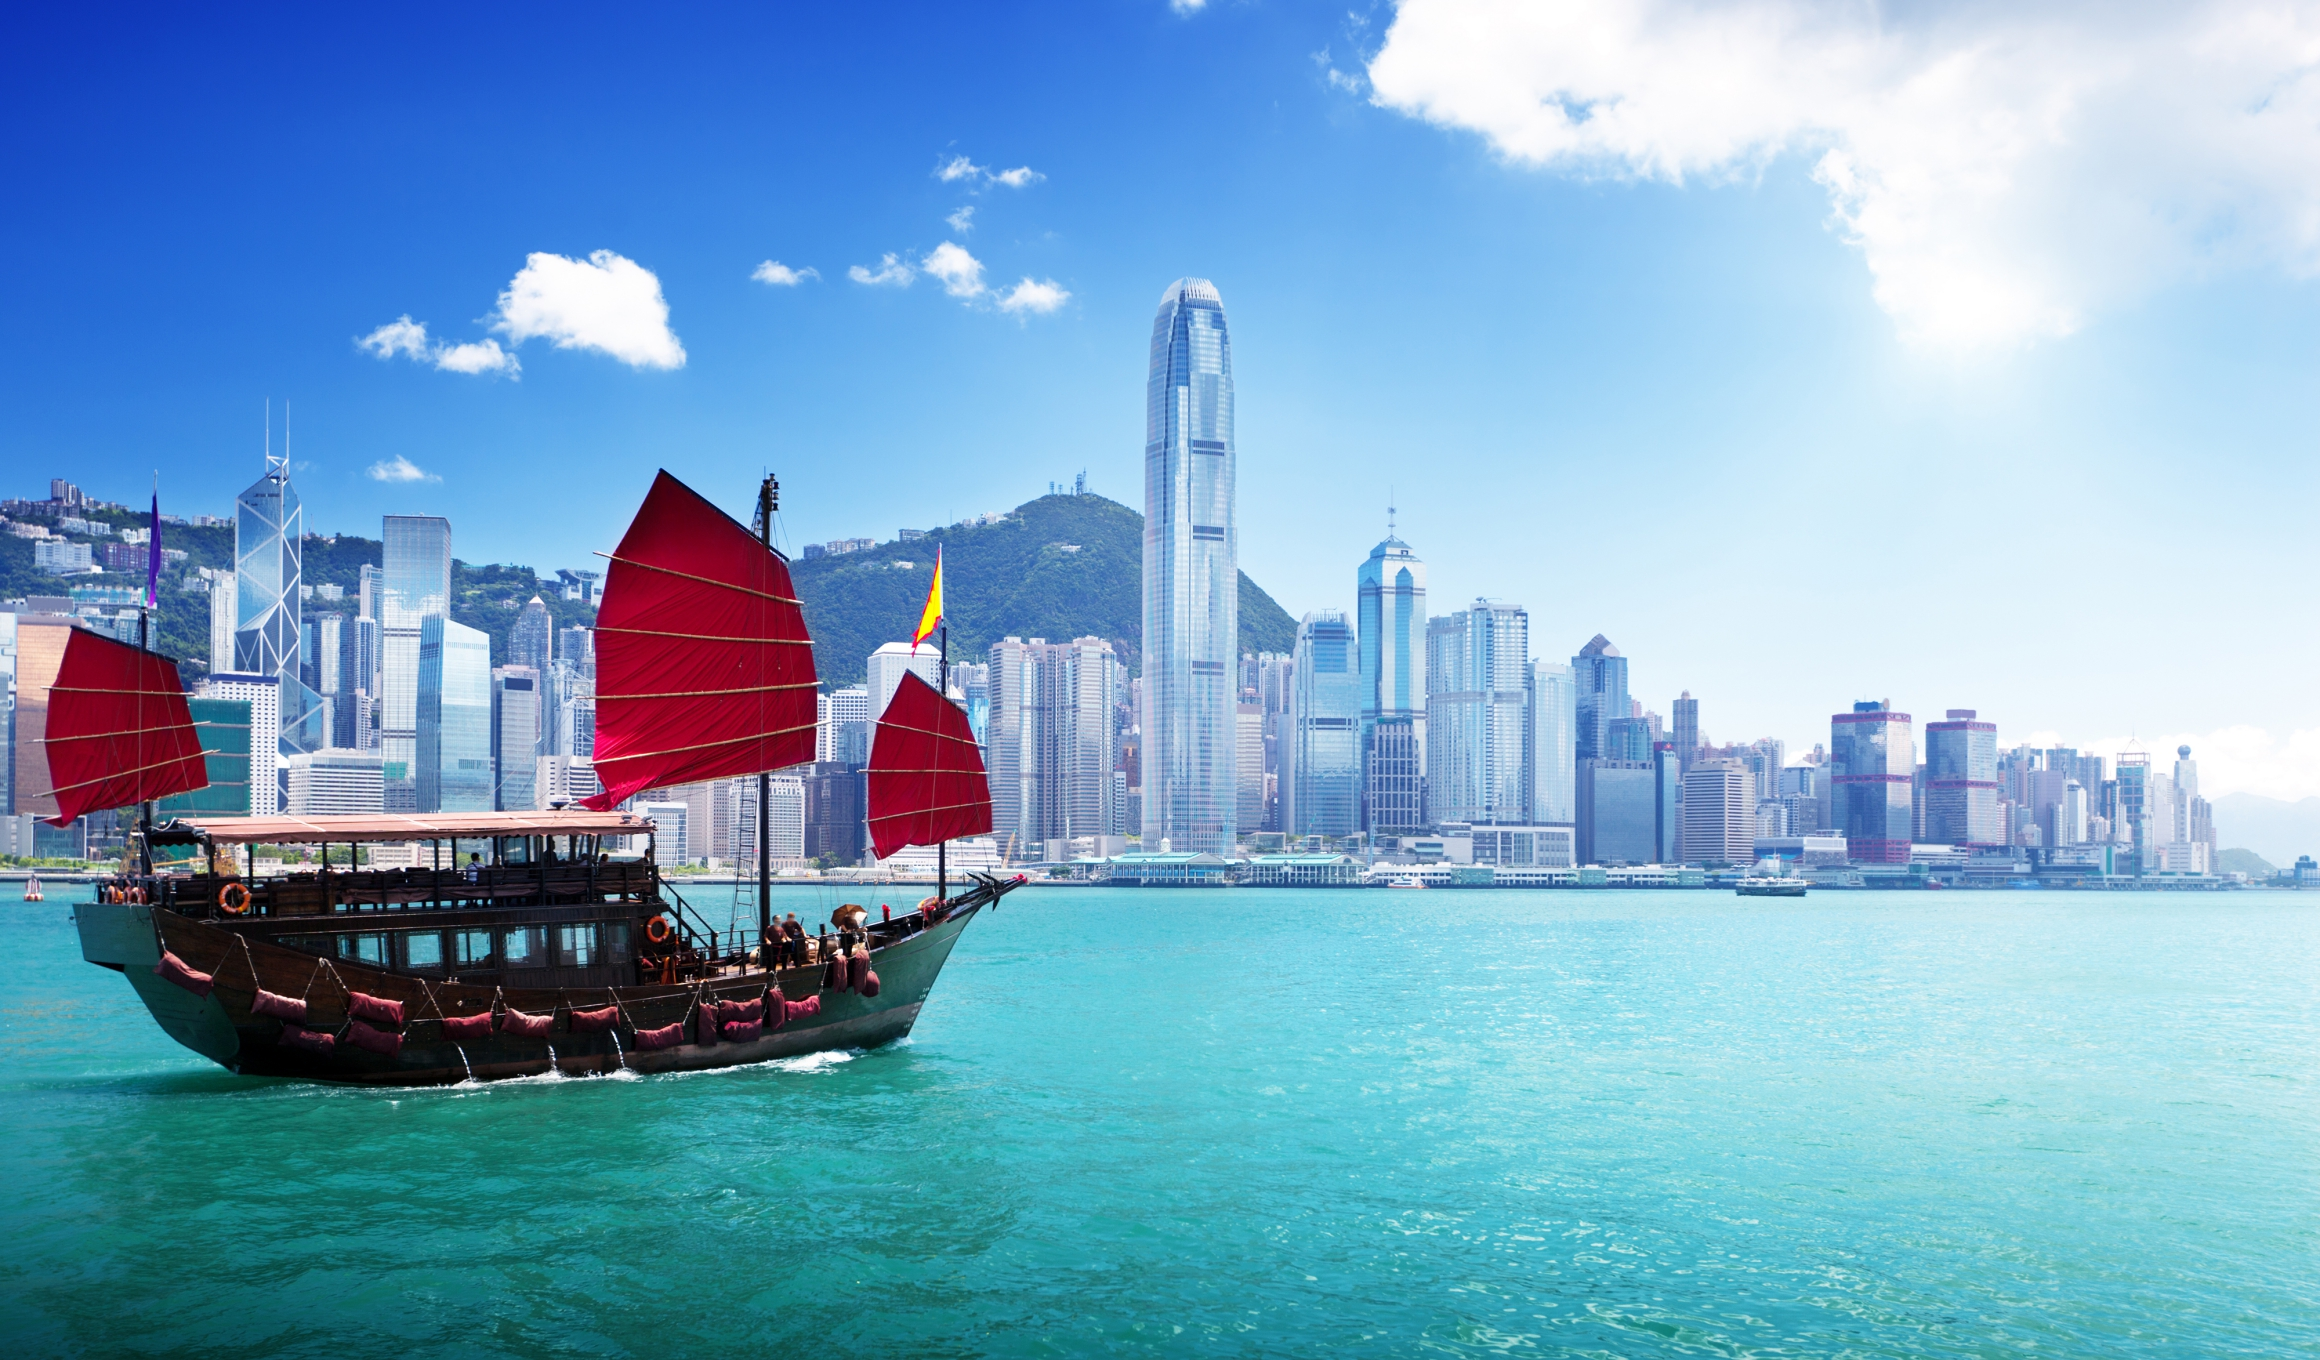 Hong Kong regulator 'concerned' by ICO funding boom